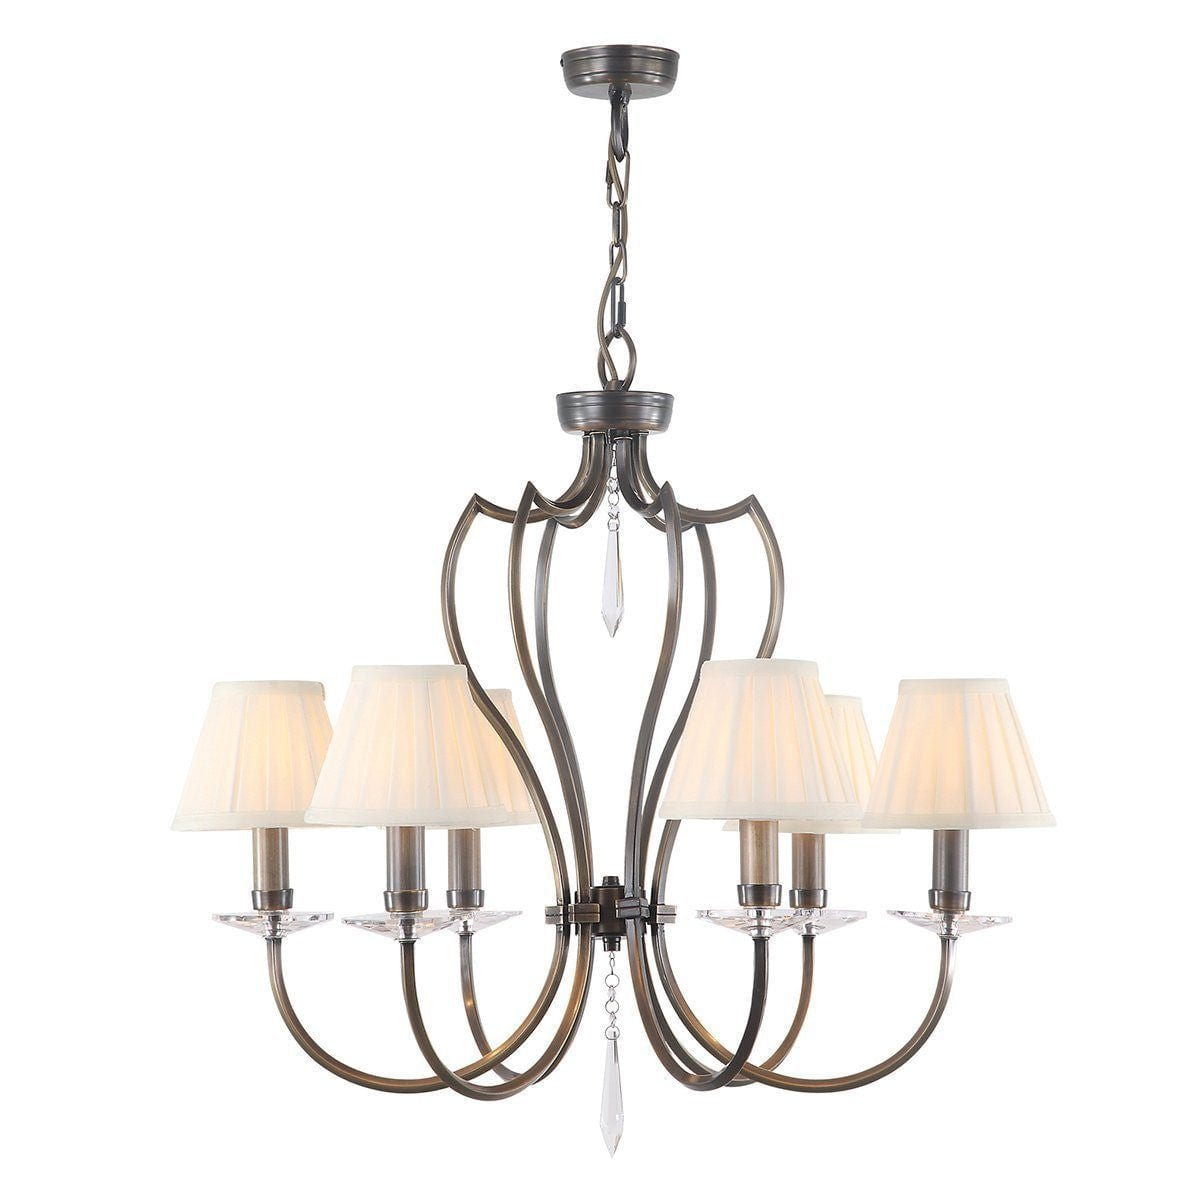 Traditional Ceiling Pendant Lights - Elstead Pimlico Dark Bronze 6lt Chandelier Ceiling Light PM6 DB